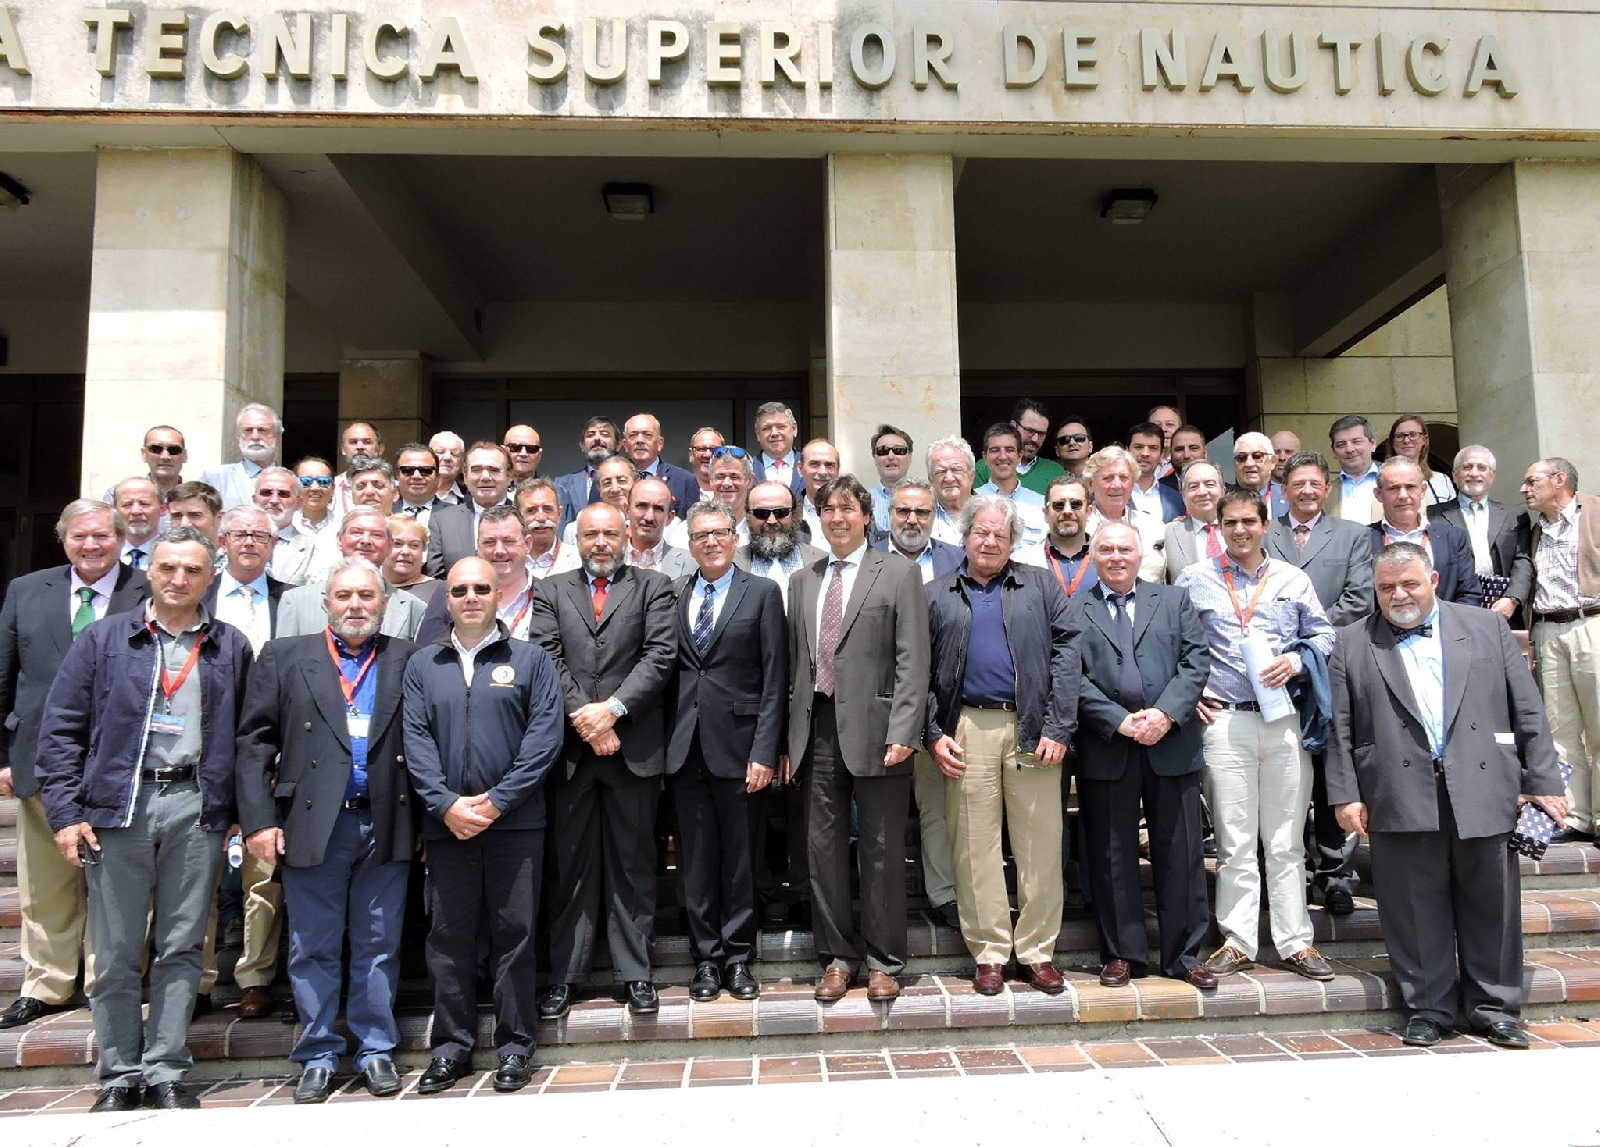 Spanish maritime pilots gathered together